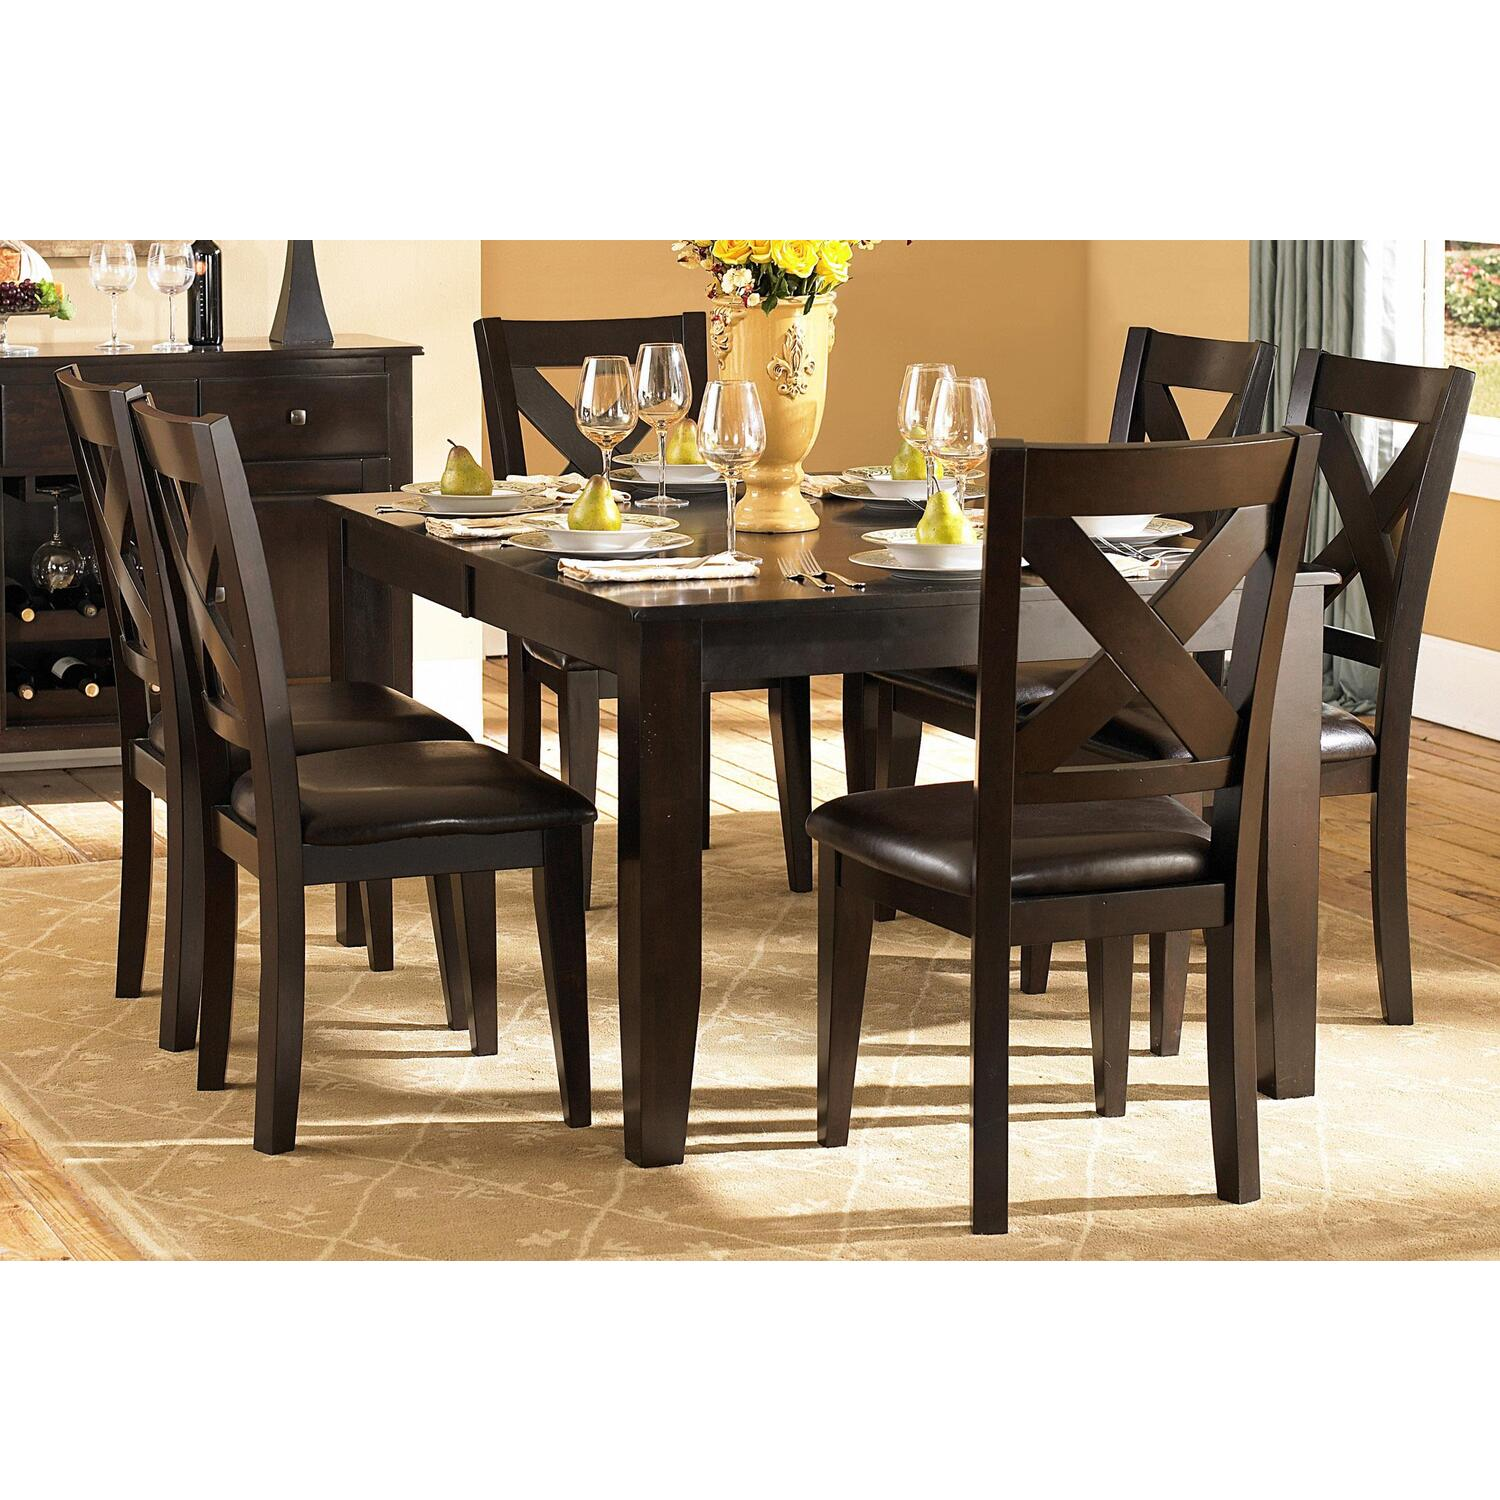 Homelegance Crown Point Dining Table Set By OJ Commerce